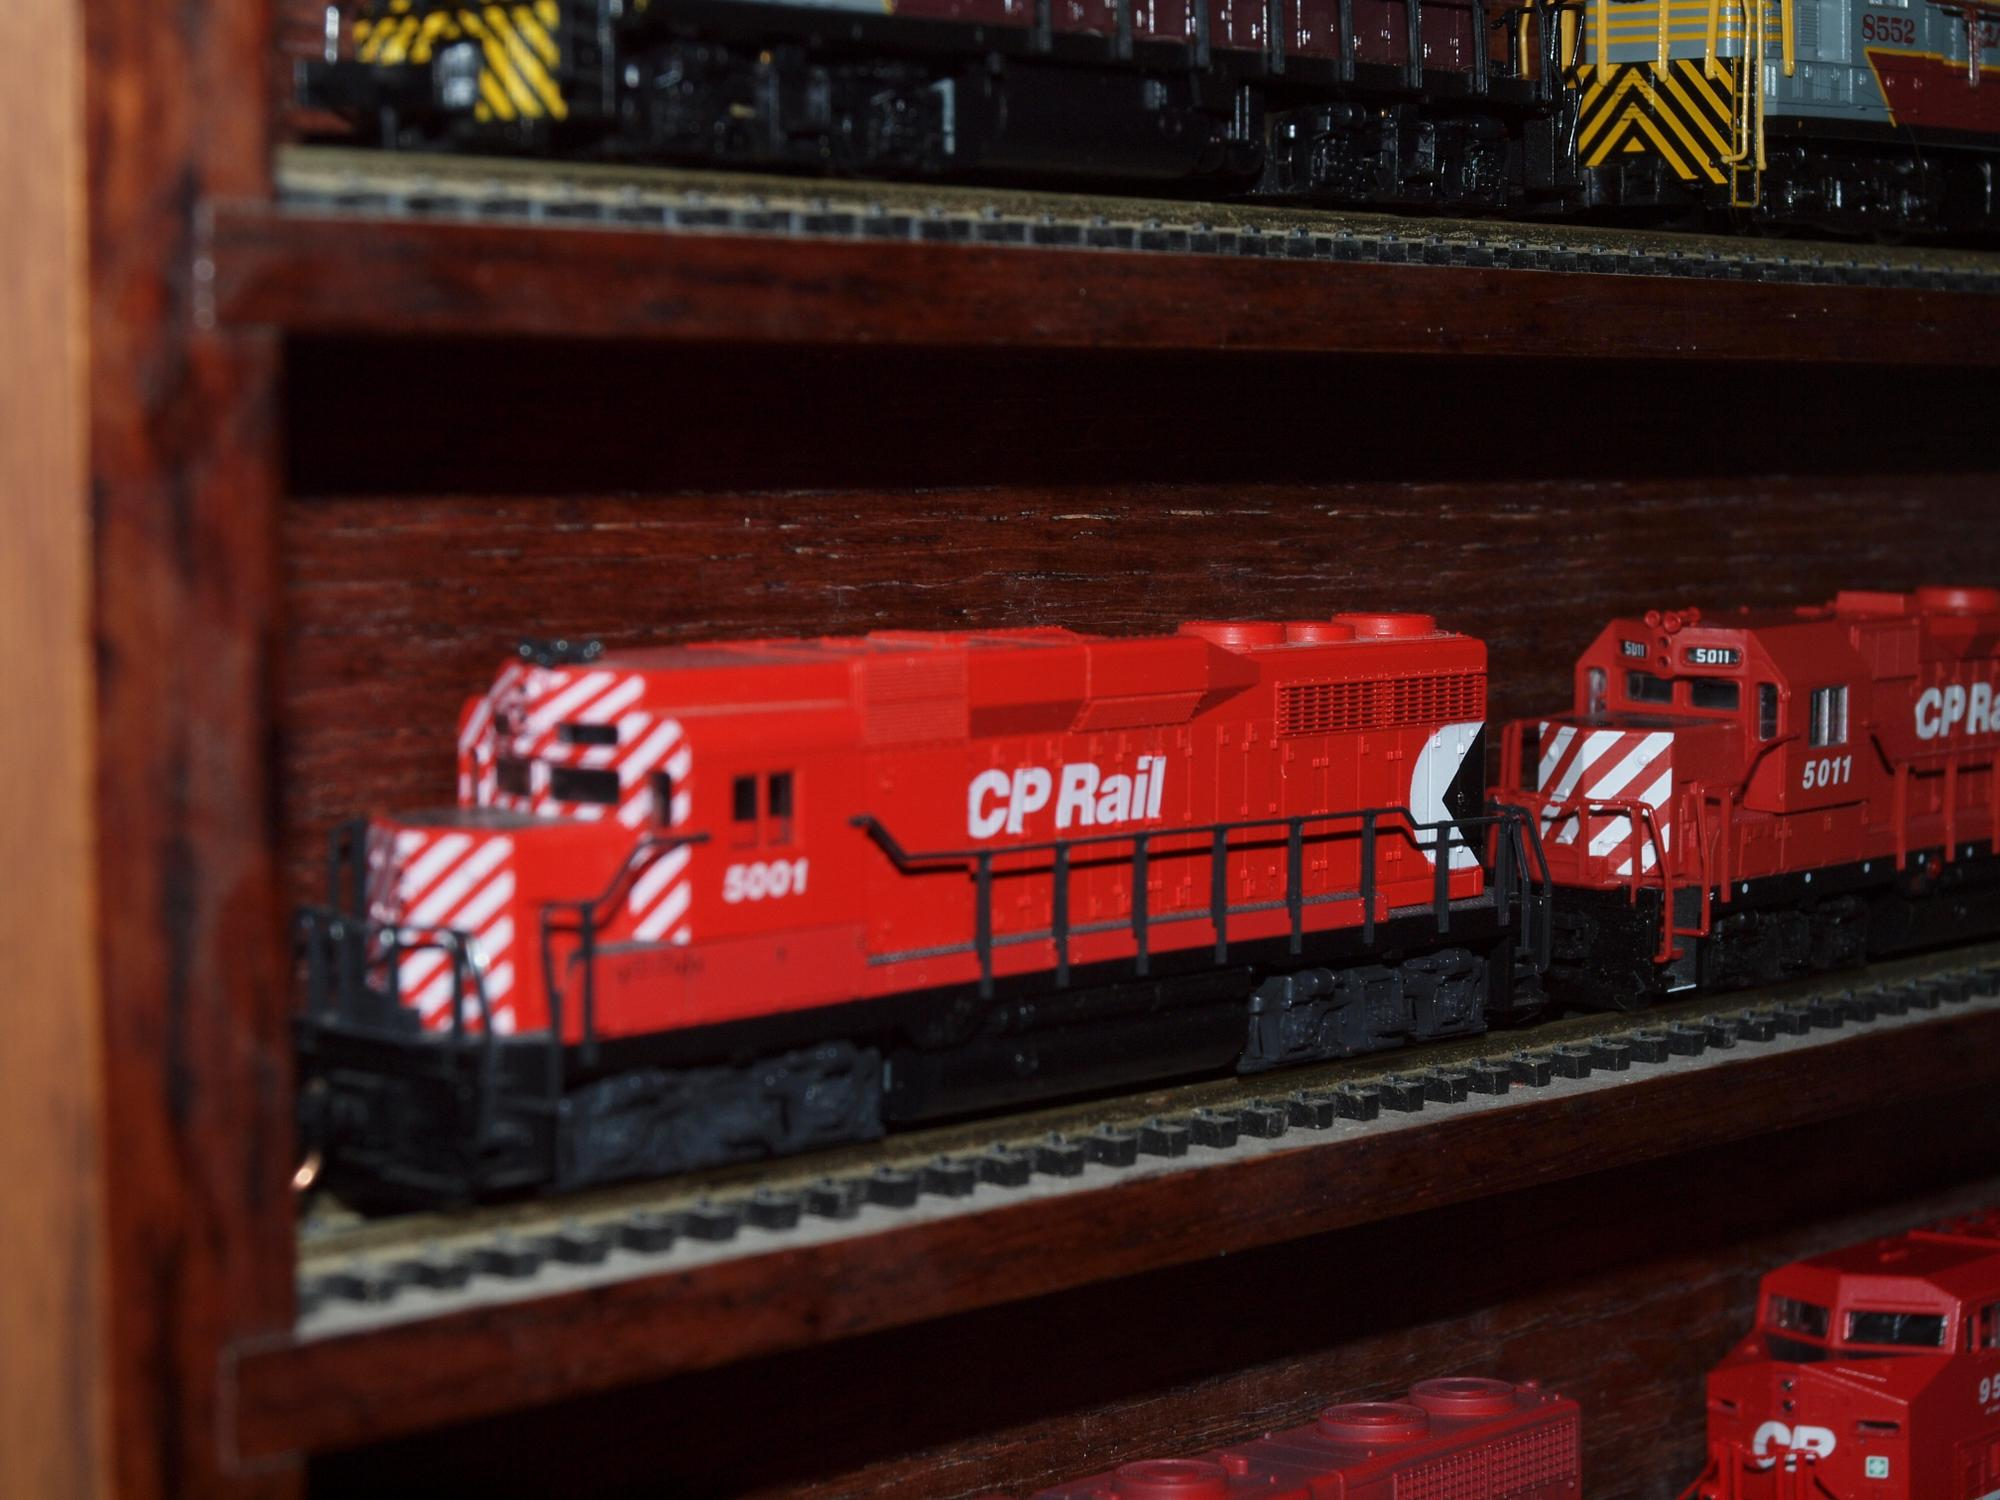 Atlas N scale 4705 EMD GP30 CP Rail #5001 - - Trainz Auctions